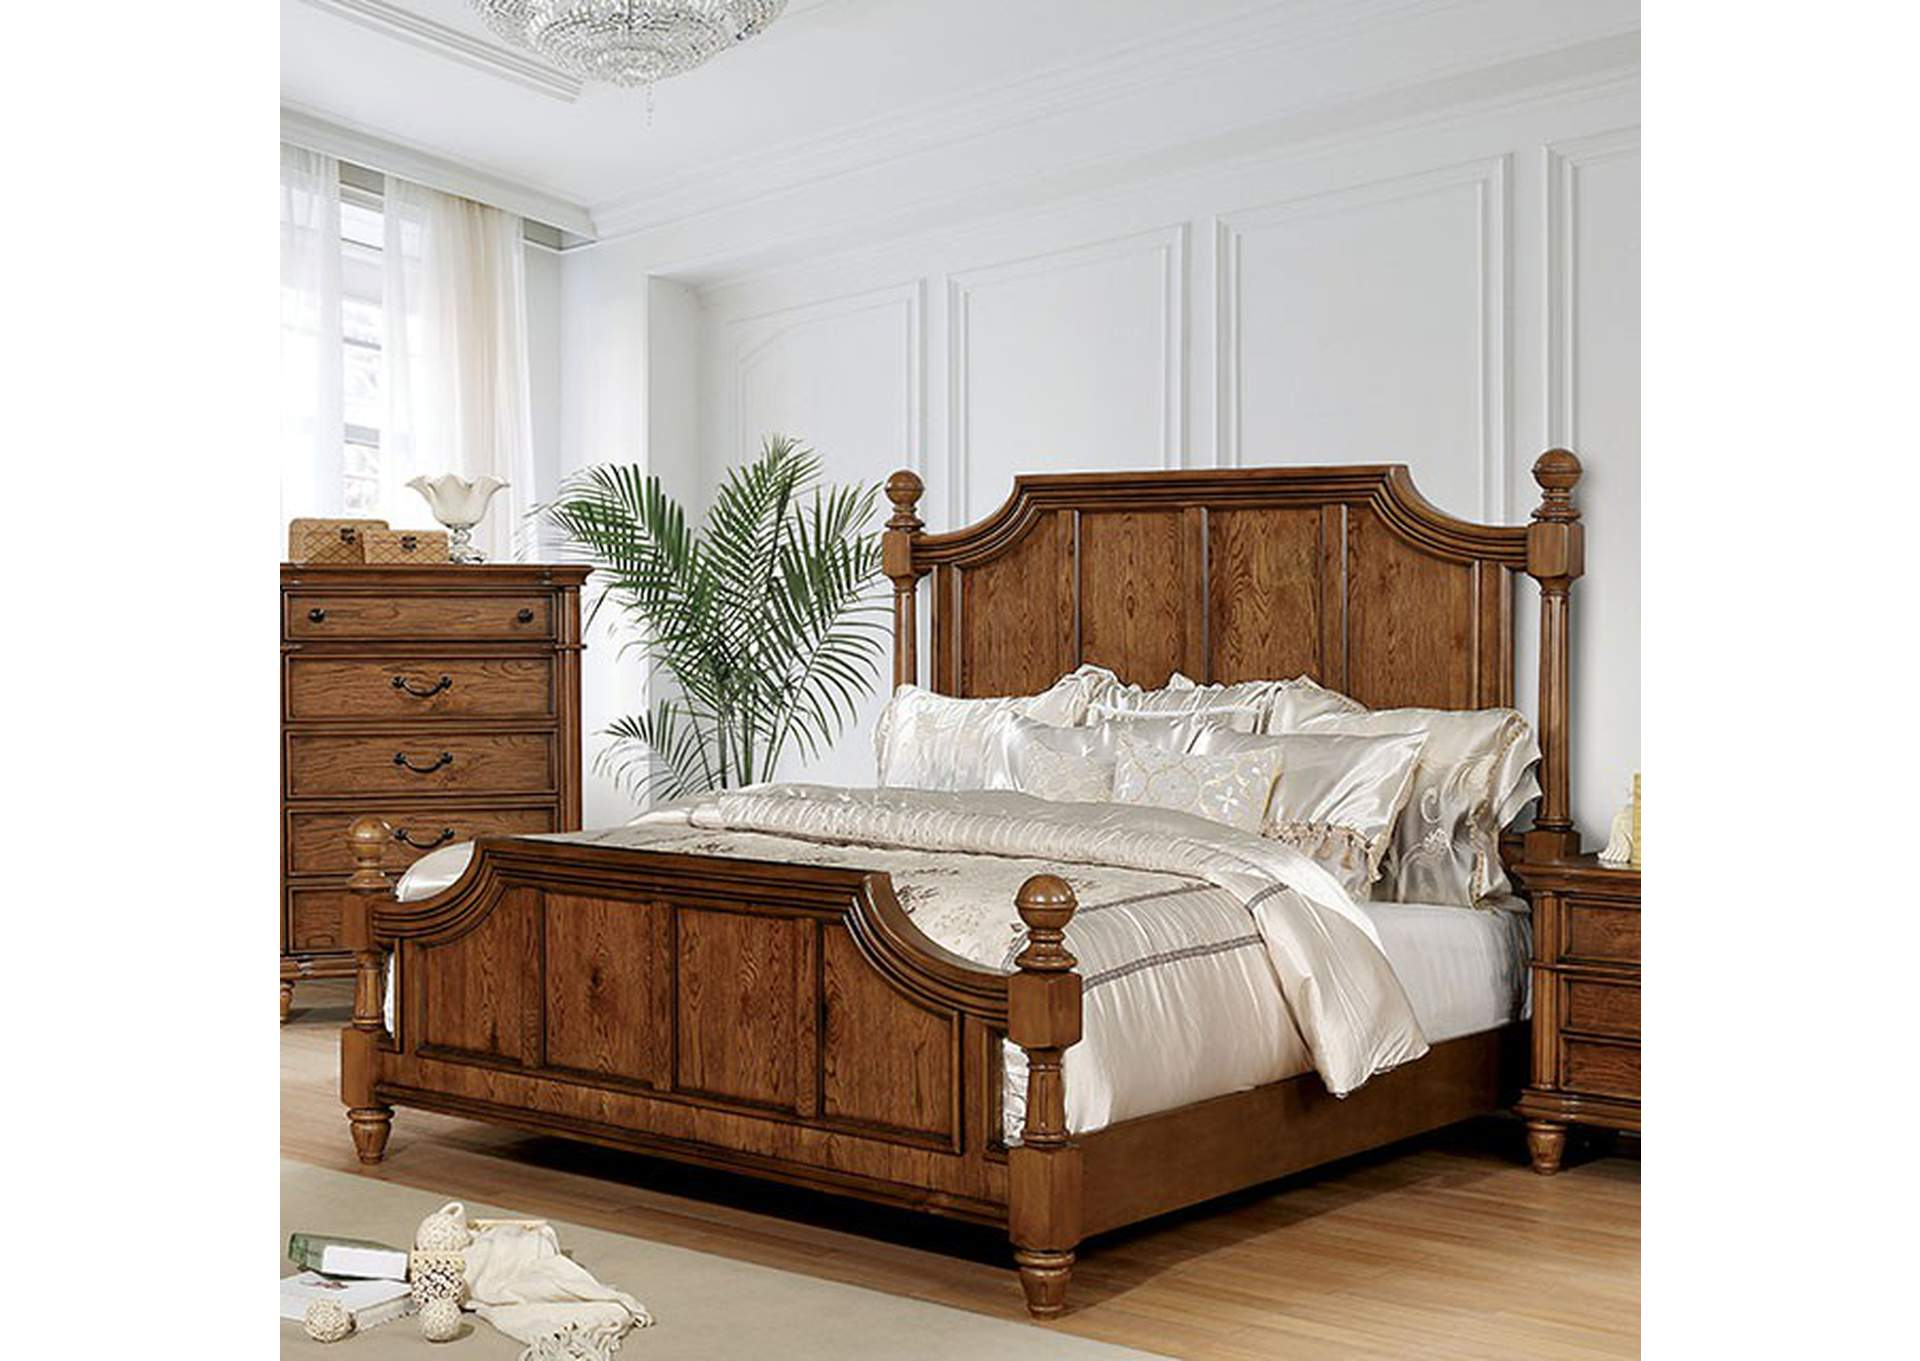 Mantador Dark Oak California King Bed,Furniture of America